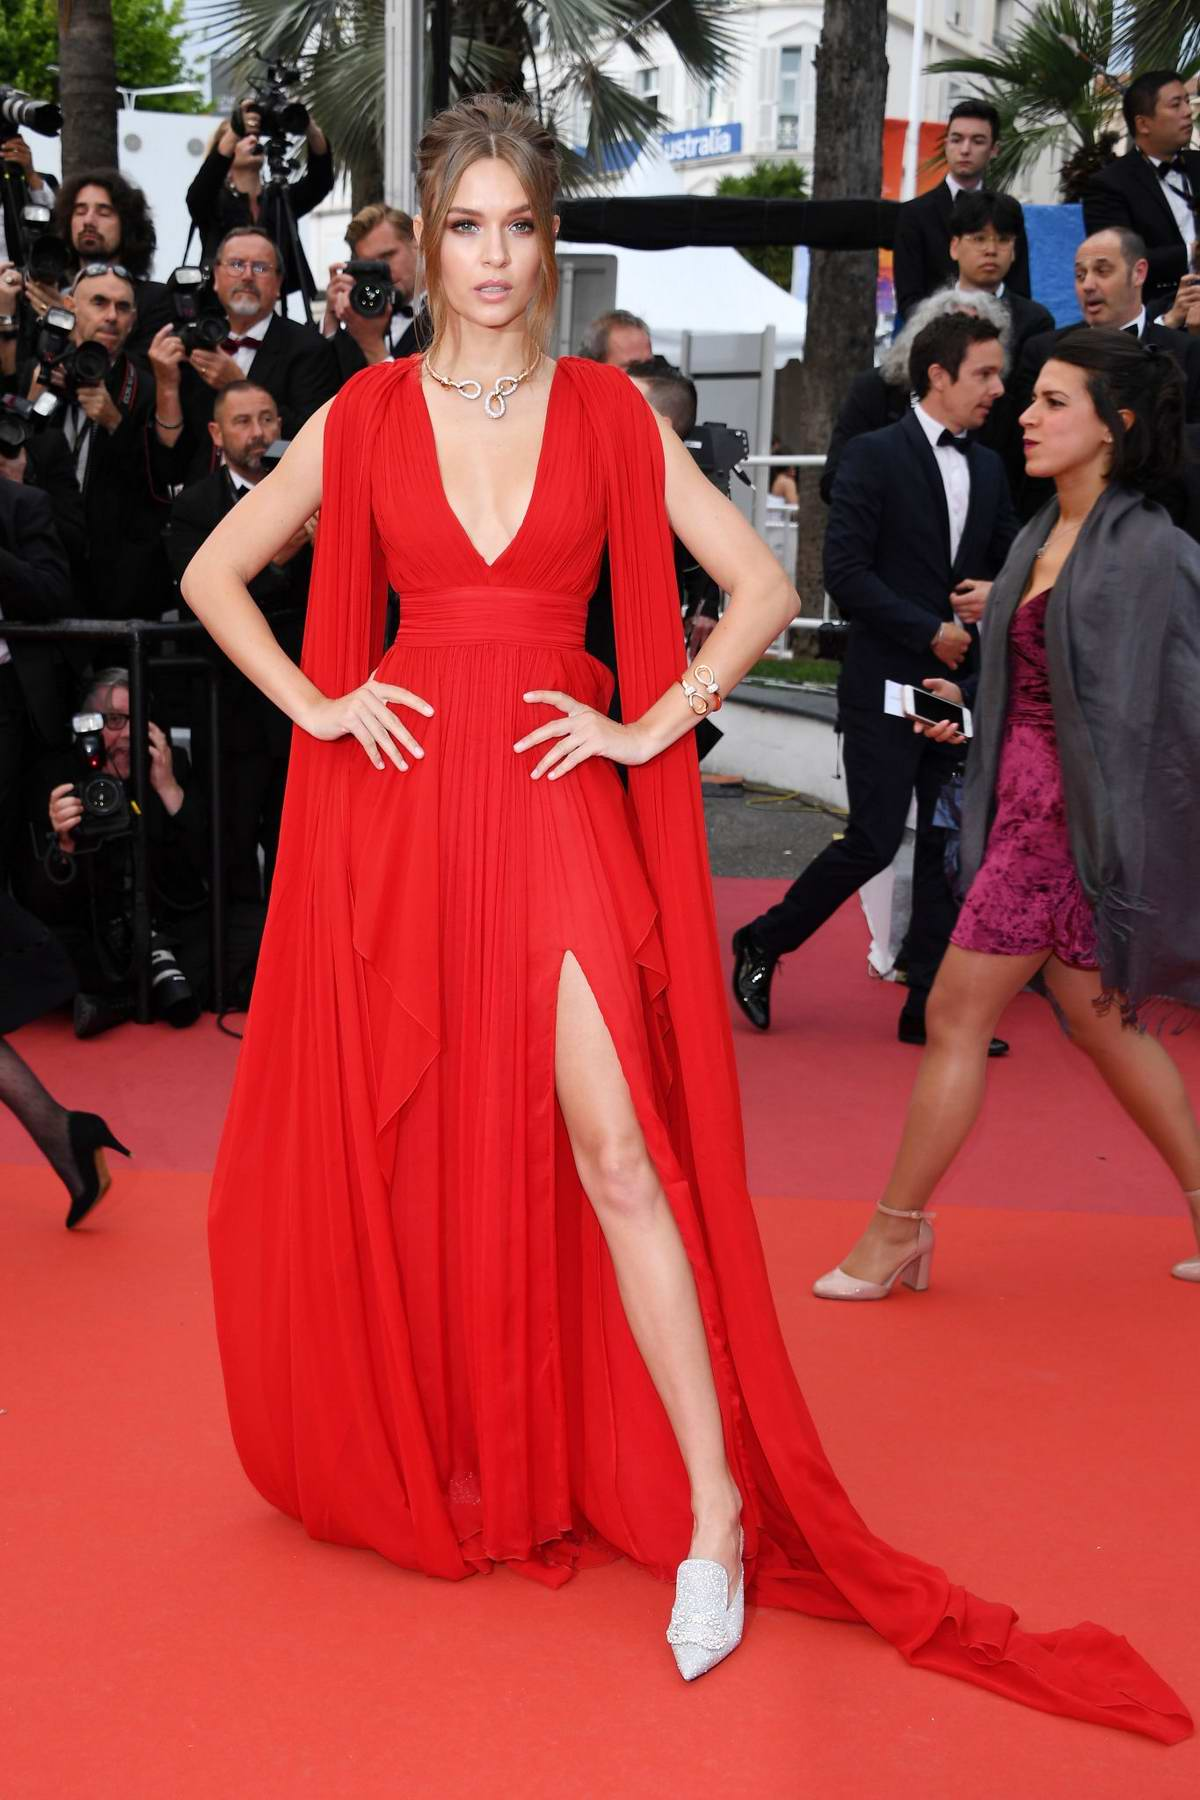 Josephine Skriver attends the screening of 'La Belle Epoque' during the 72nd annual Cannes Film Festival in Cannes, France